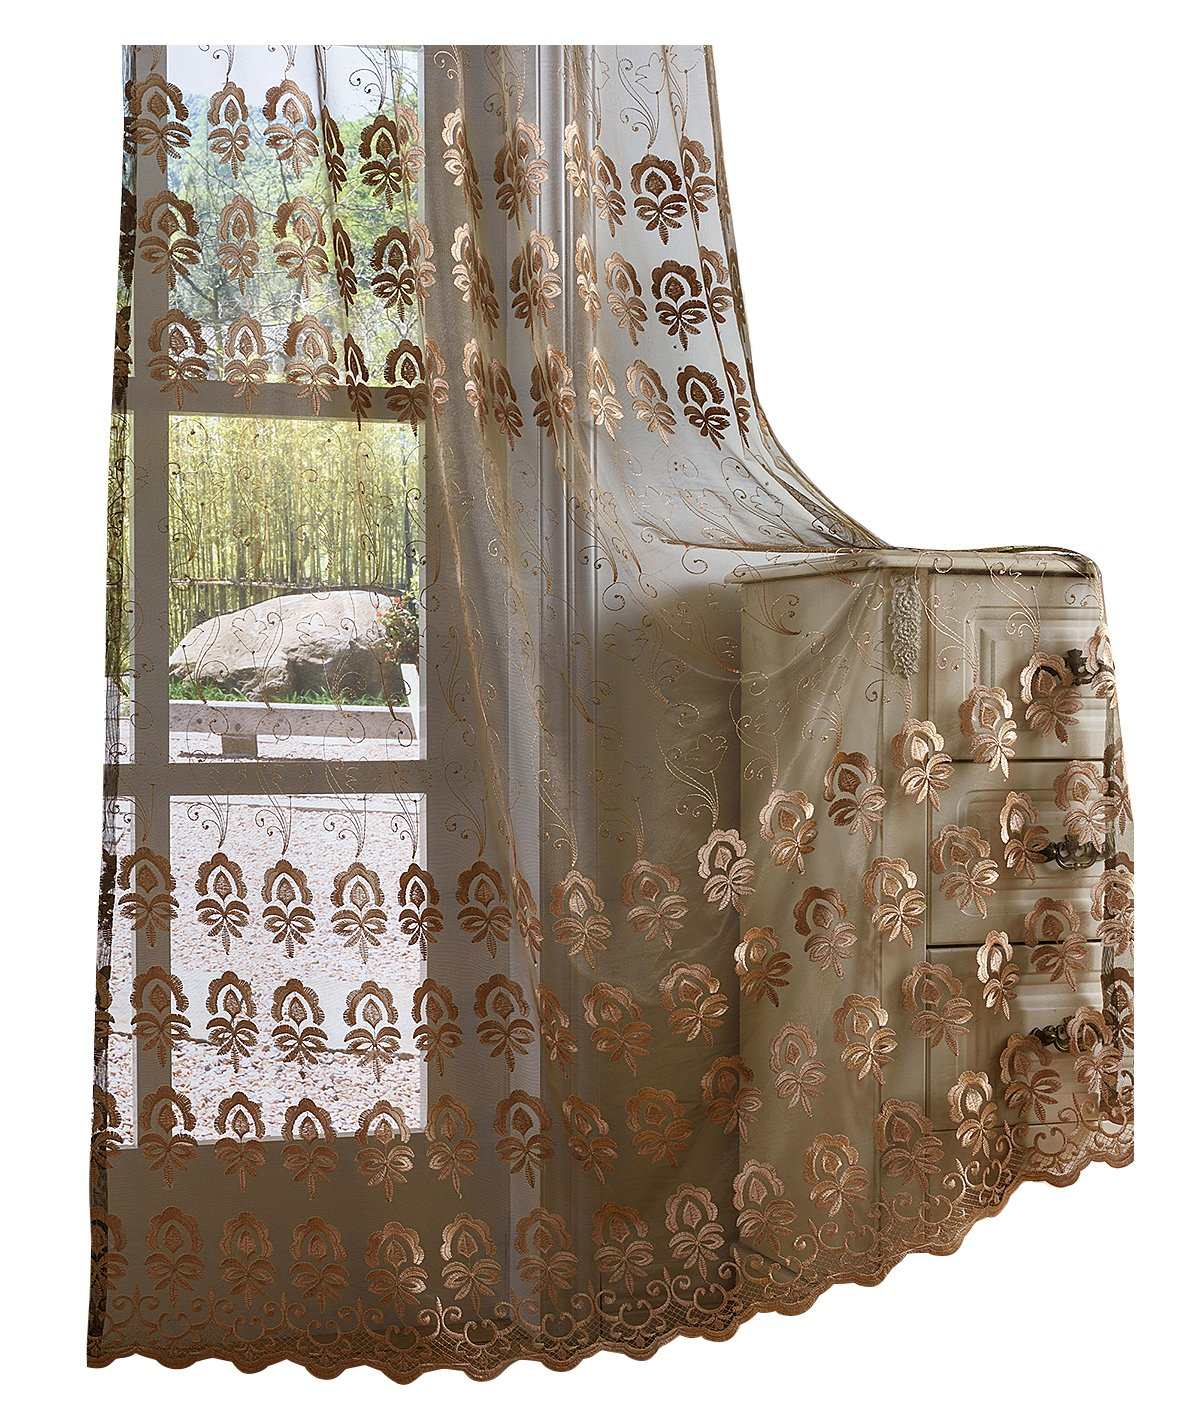 Aside Bside Floral Embroidered Sheer Curtains Vintage Elegance Embroidery Voile Curtain Rod Pocket Window Panels for Living Room & Bedroom(1 Panel, W 50 x L 90 inch, Brown) -X0401C1FFFBNX25090-8512